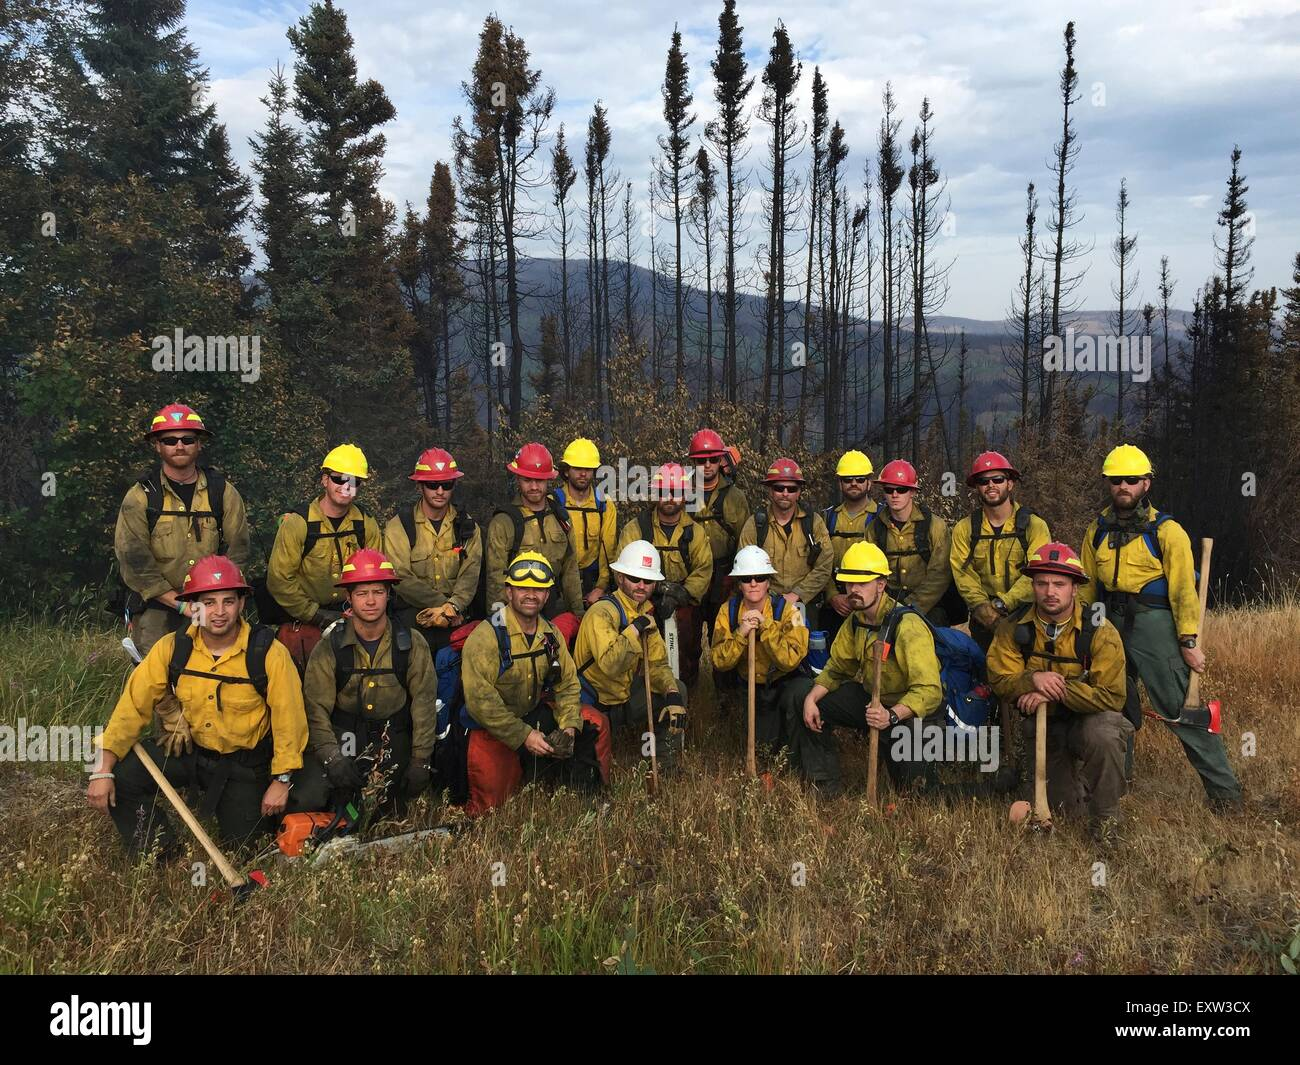 A group of Bureau of Land Management backcountry firefighters recruited from military veterans pose during field - Stock Image